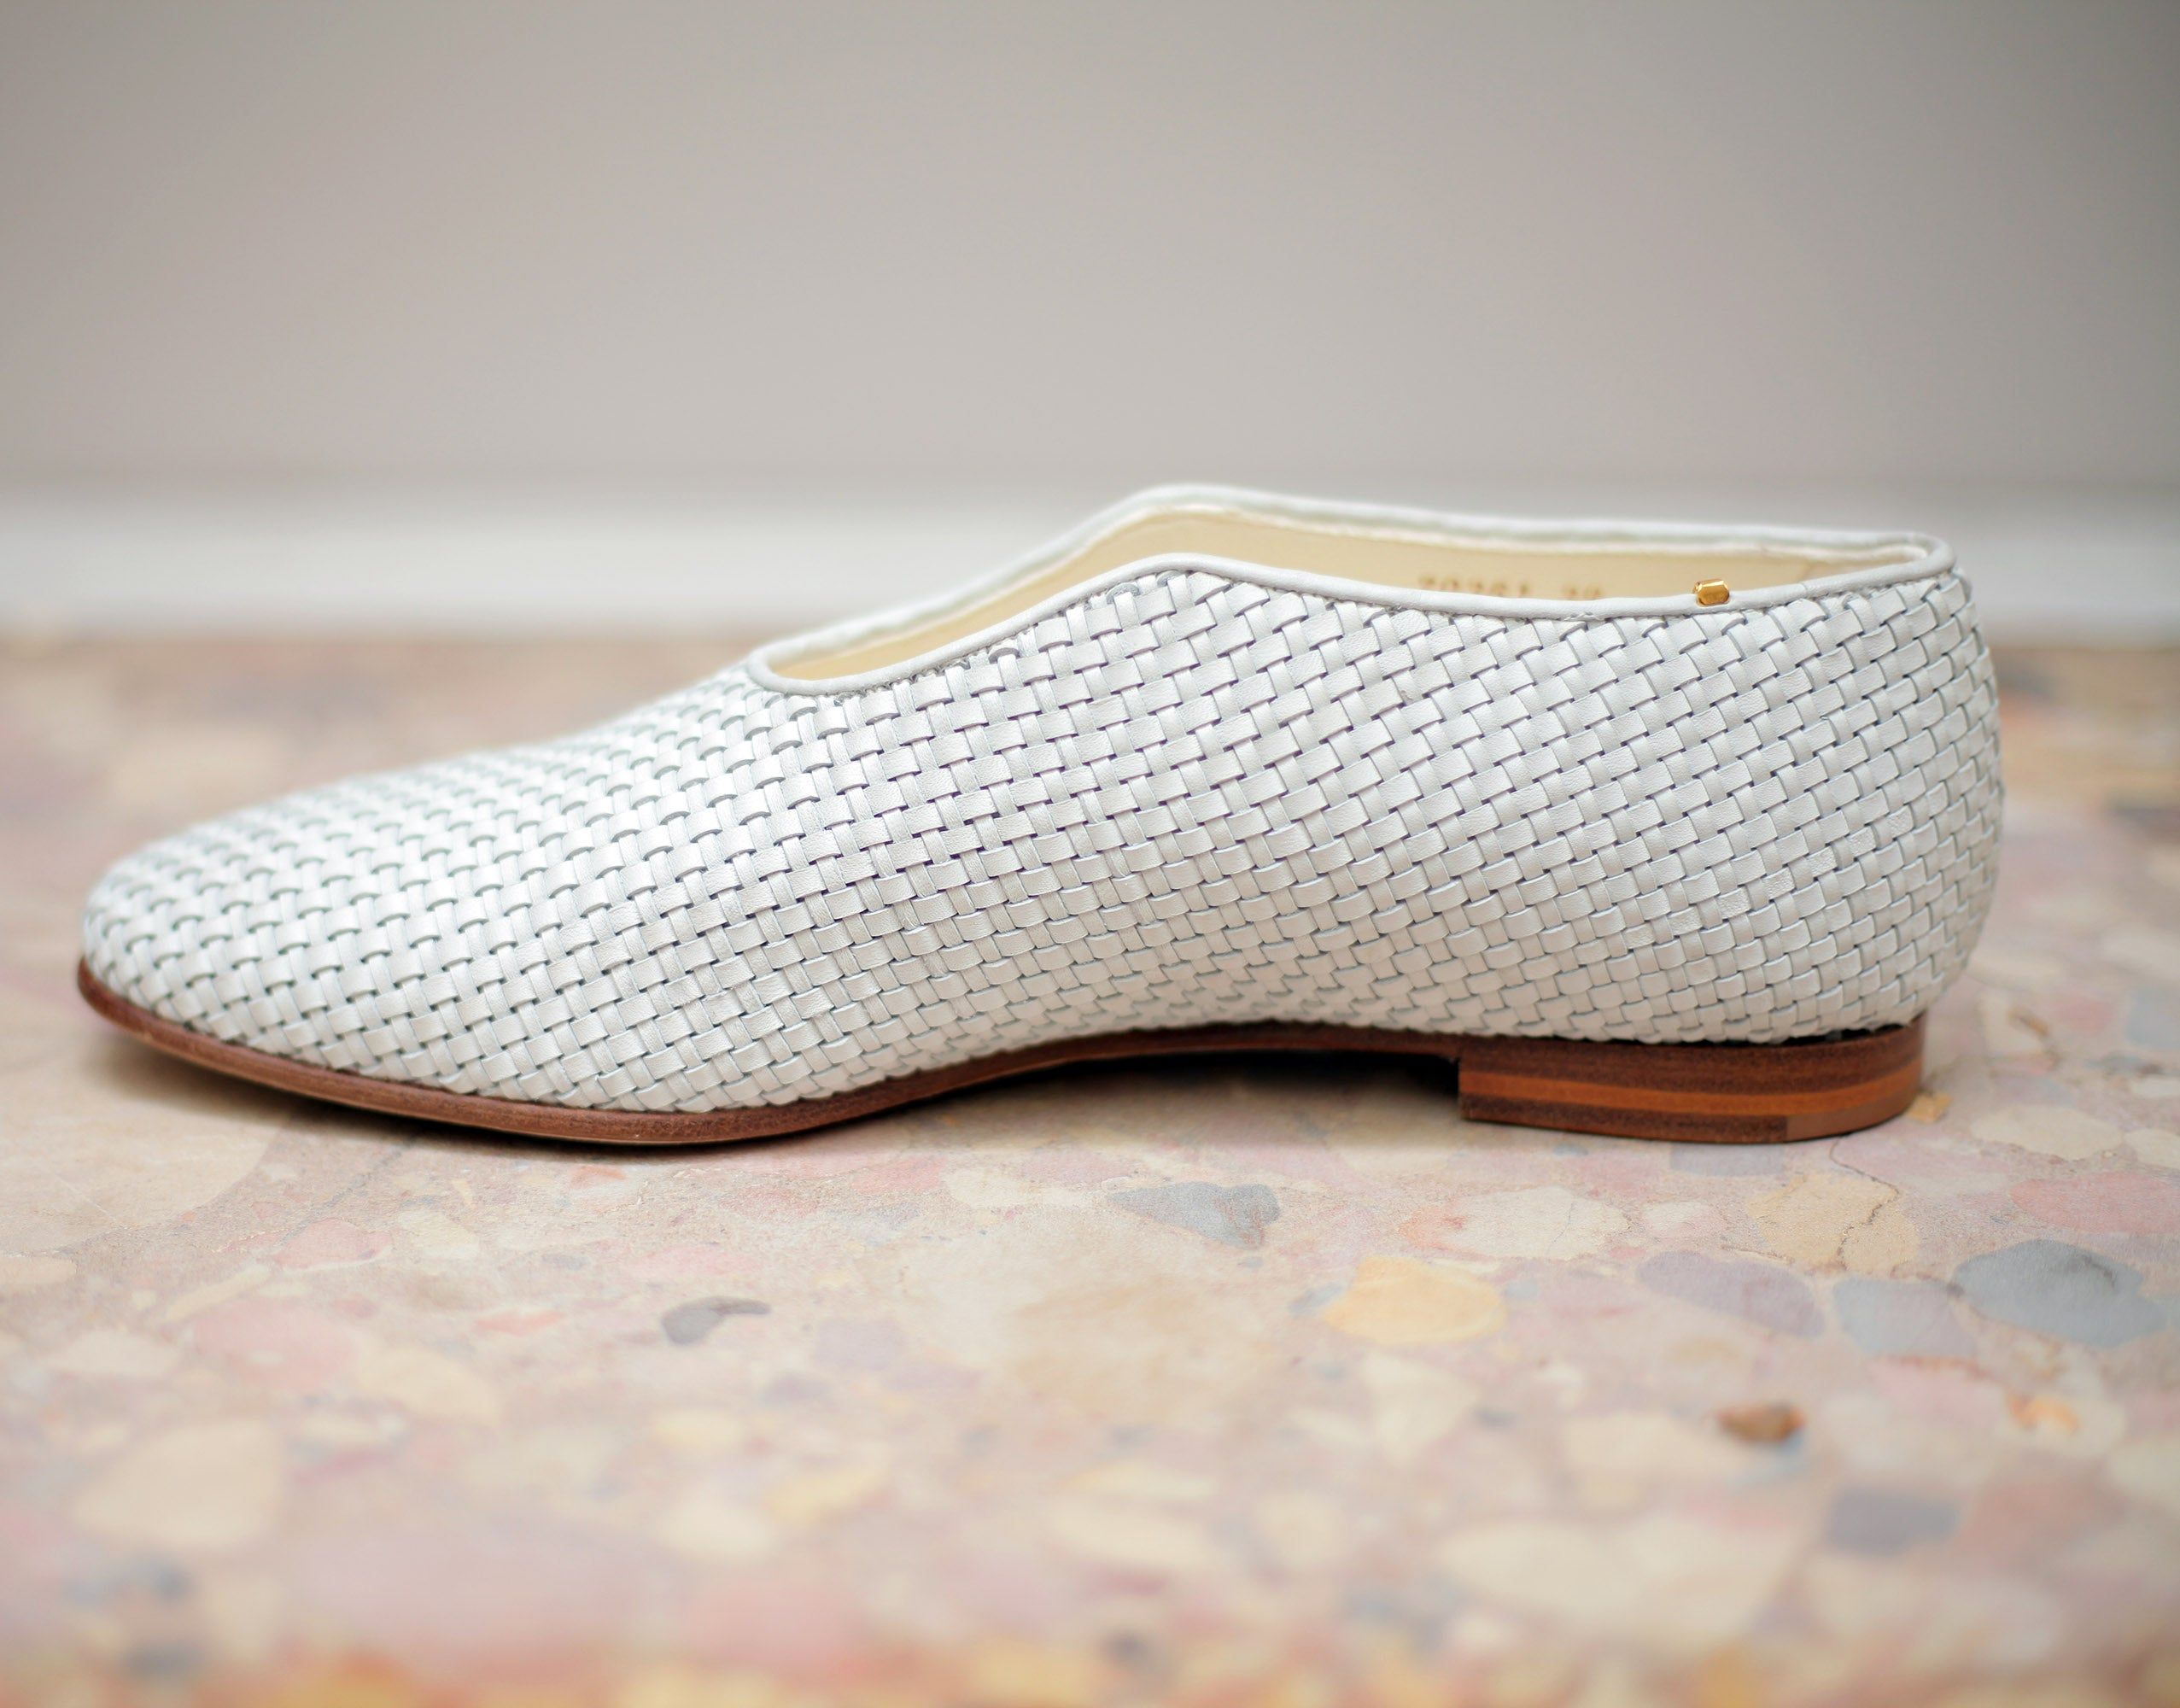 The PHOS-PHORO X ZOE LEE COLLABORATION The Watson in up cycled Italian hand woven calfskin.